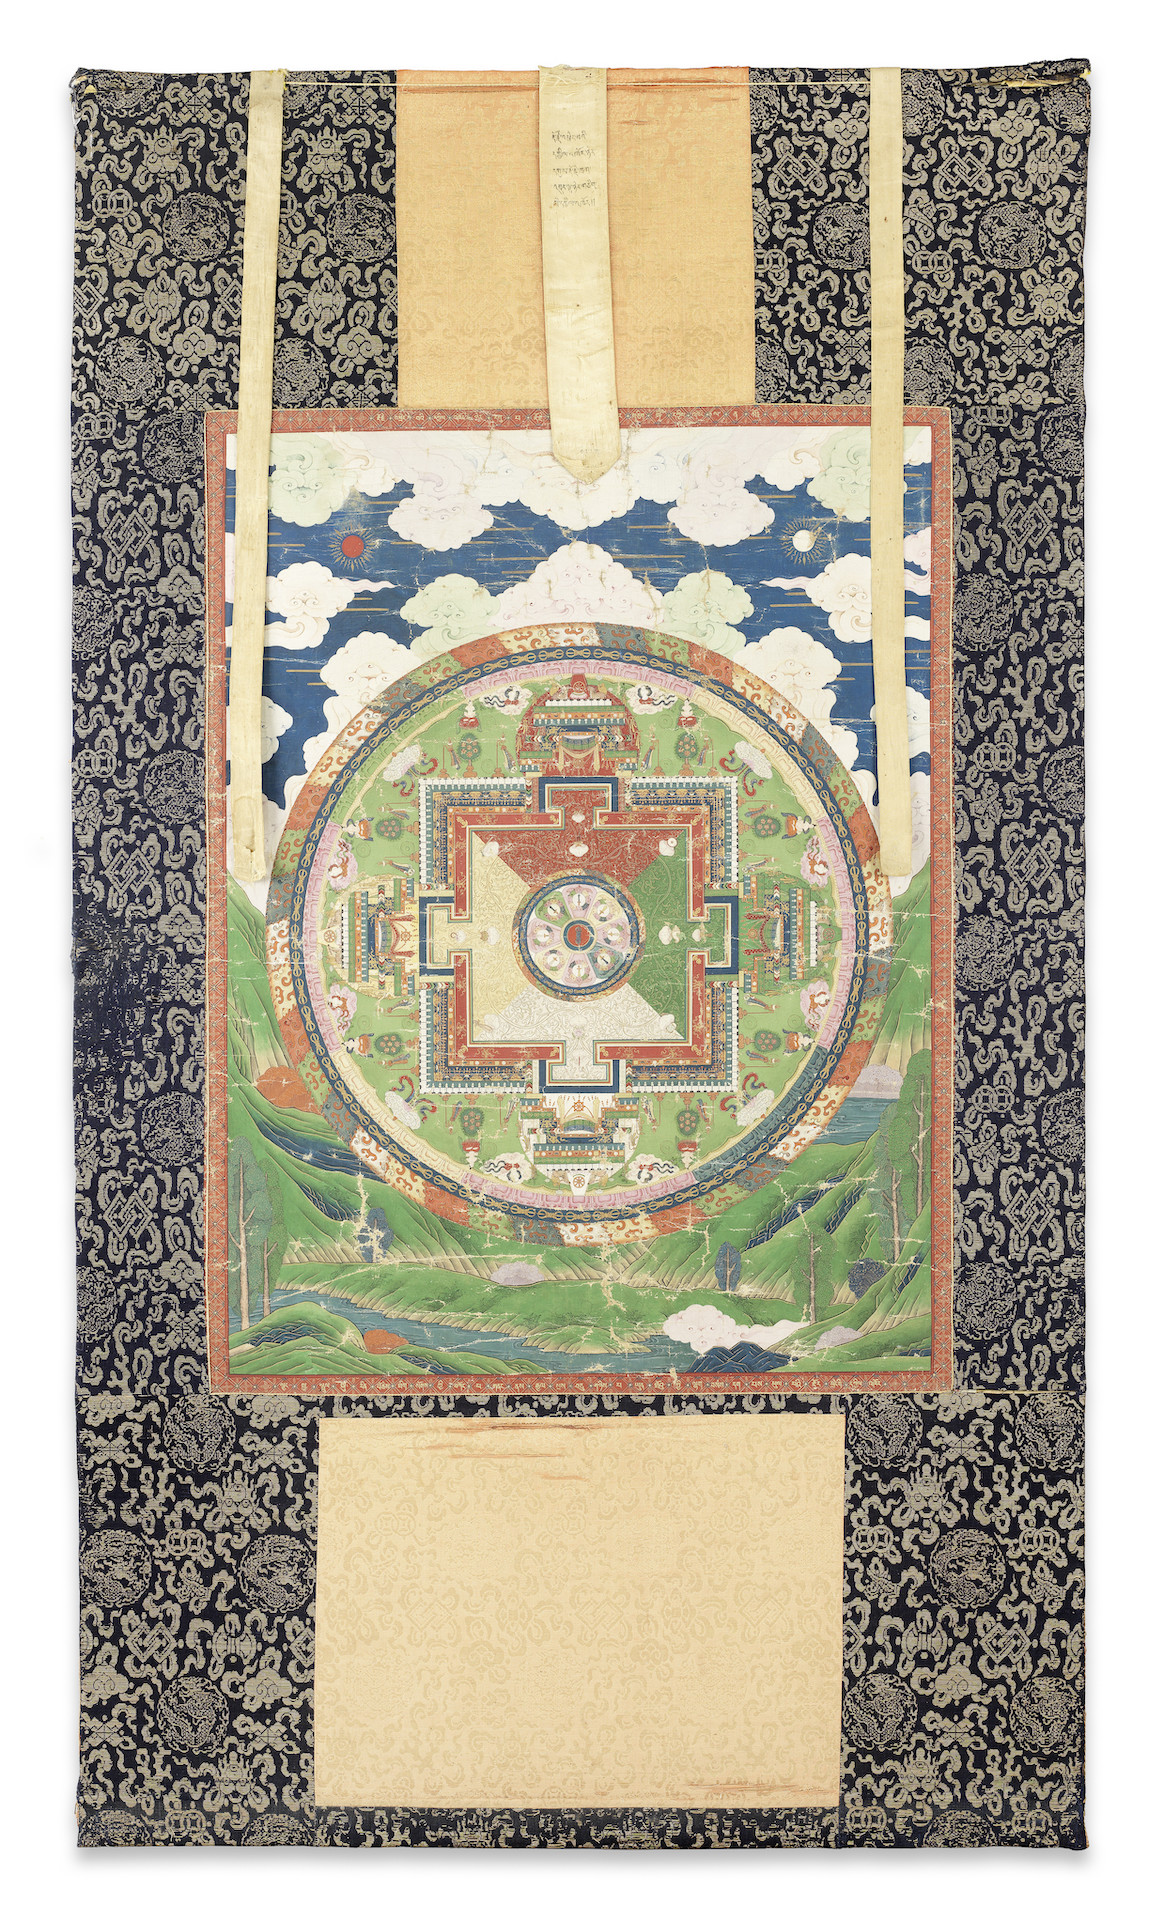 AN IMPERIAL INSCRIBED VAJRAHERUKA TWENTY-ONE DEITY MANDALA, Qianlong, circa 1750-1763, 74cm (29 1/8in) high x 55.5cm (21 7/8in) wide; With silk mounts: 134cm (52 6/8in) high x 75cm (29 1/2in) wide. £20,000-30,000